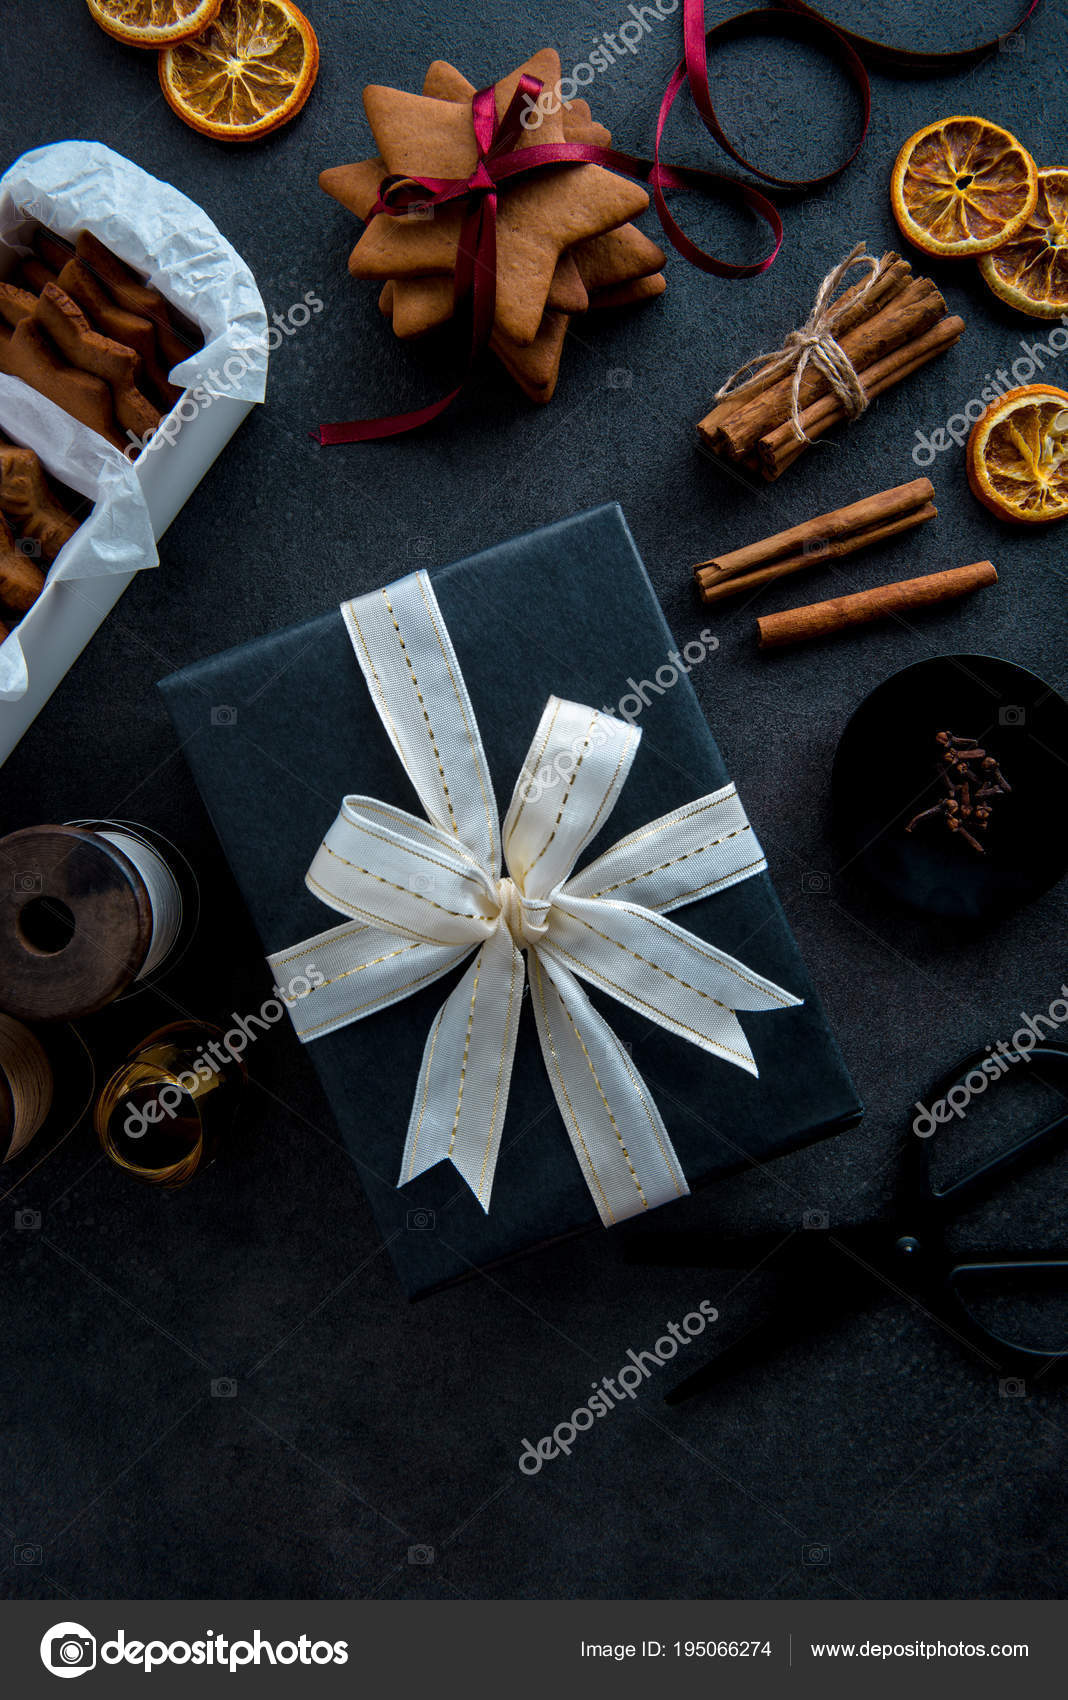 Gift wrapping for Christmas. Materials and accessories for wrapp ...